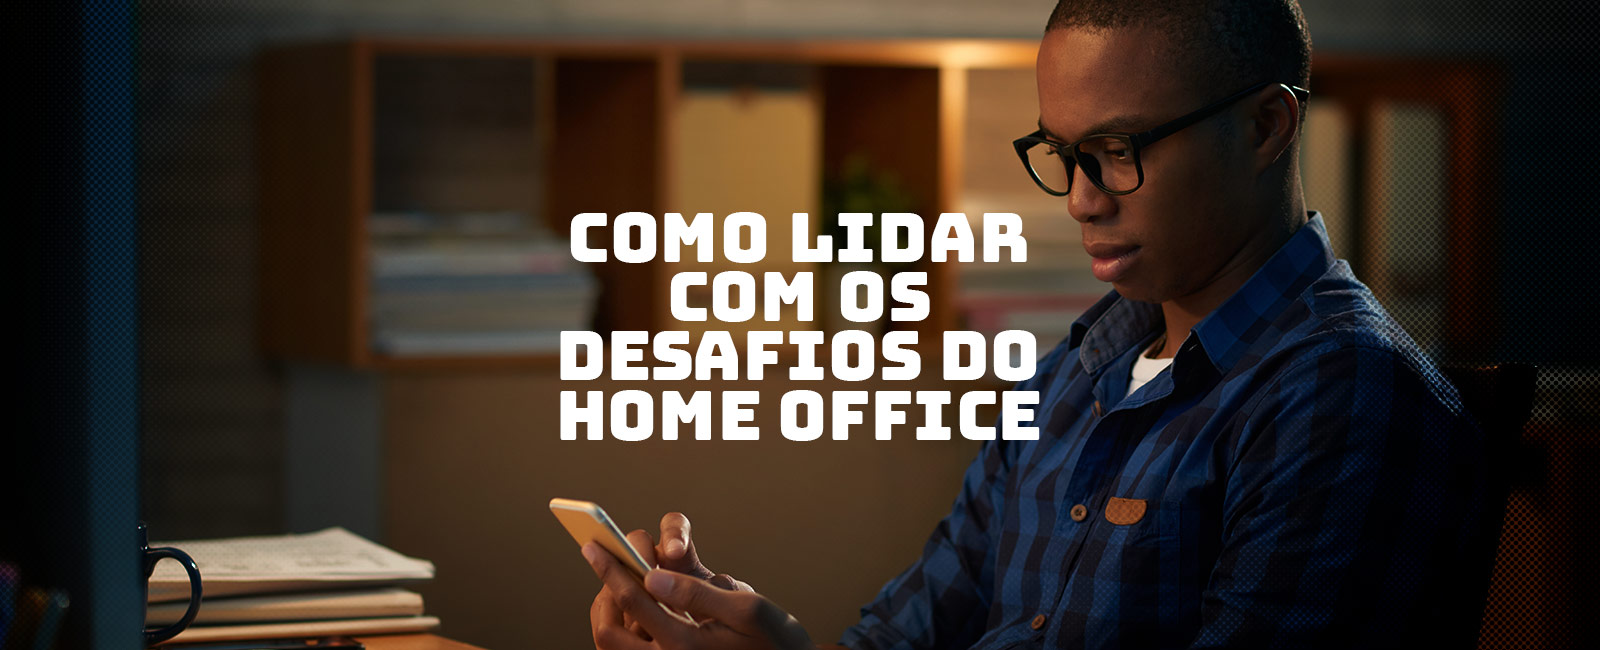 Desafios do Home Office